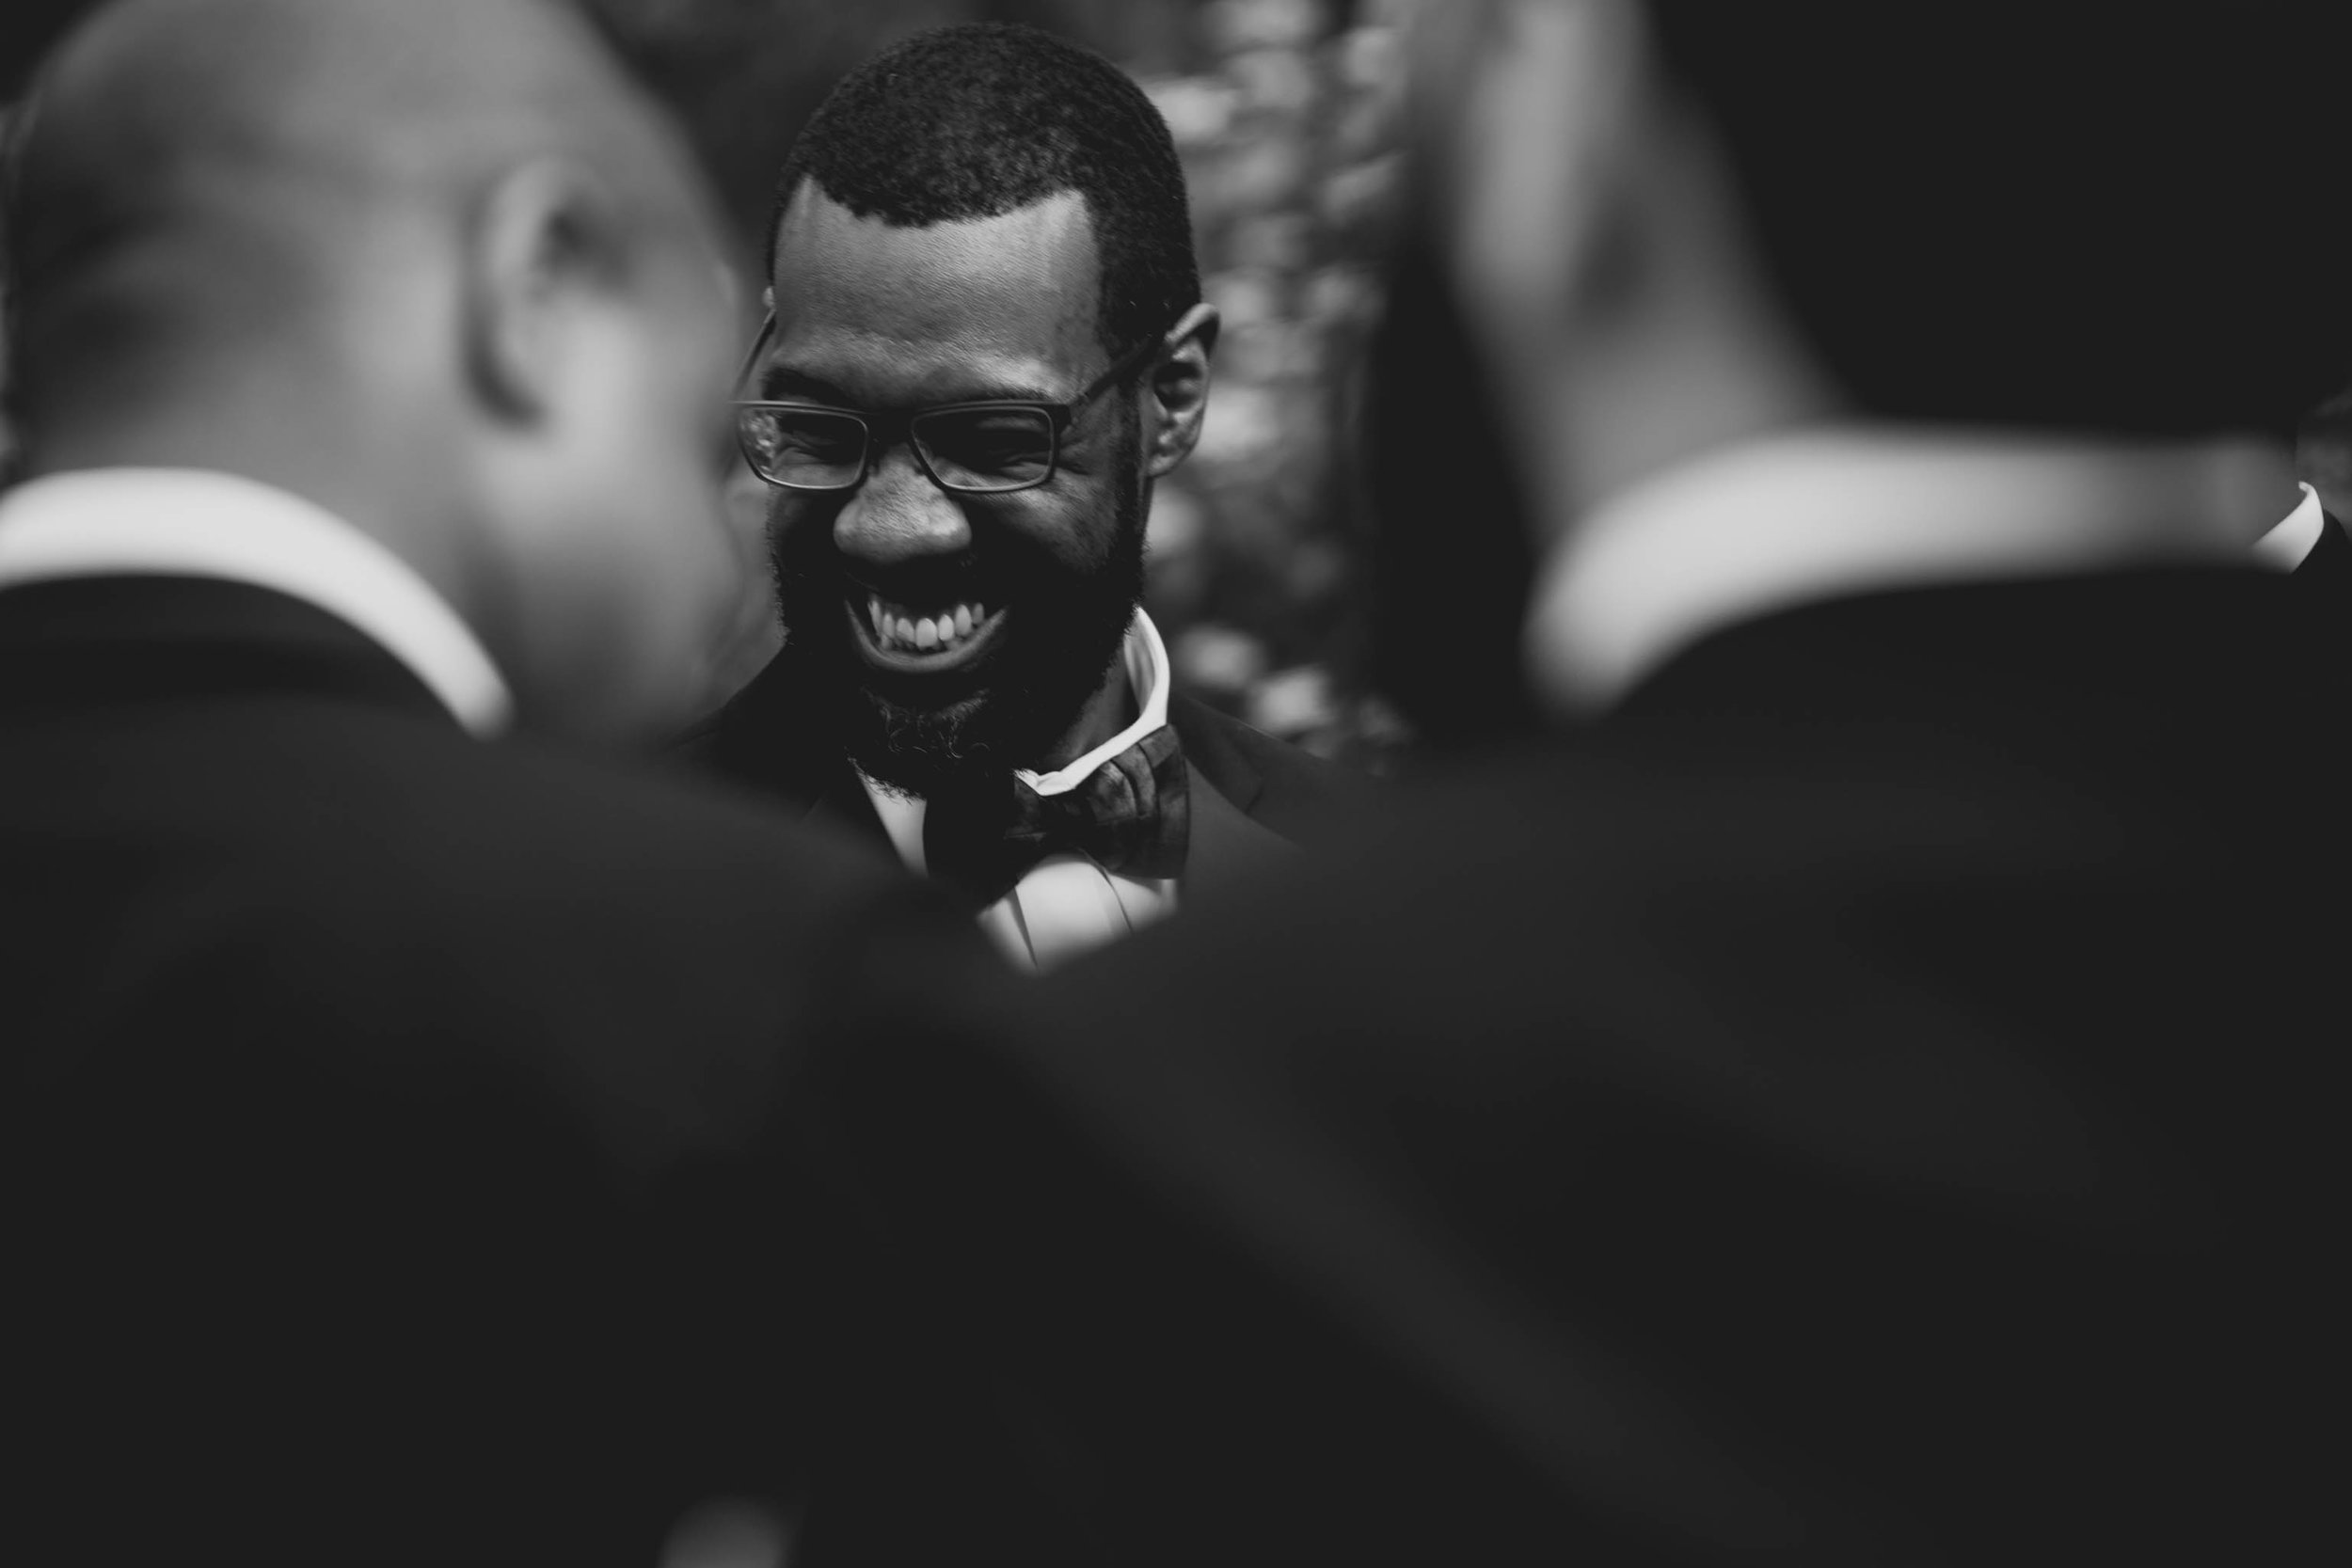 The groom and groomsmen sharing a laugh after the ceremony